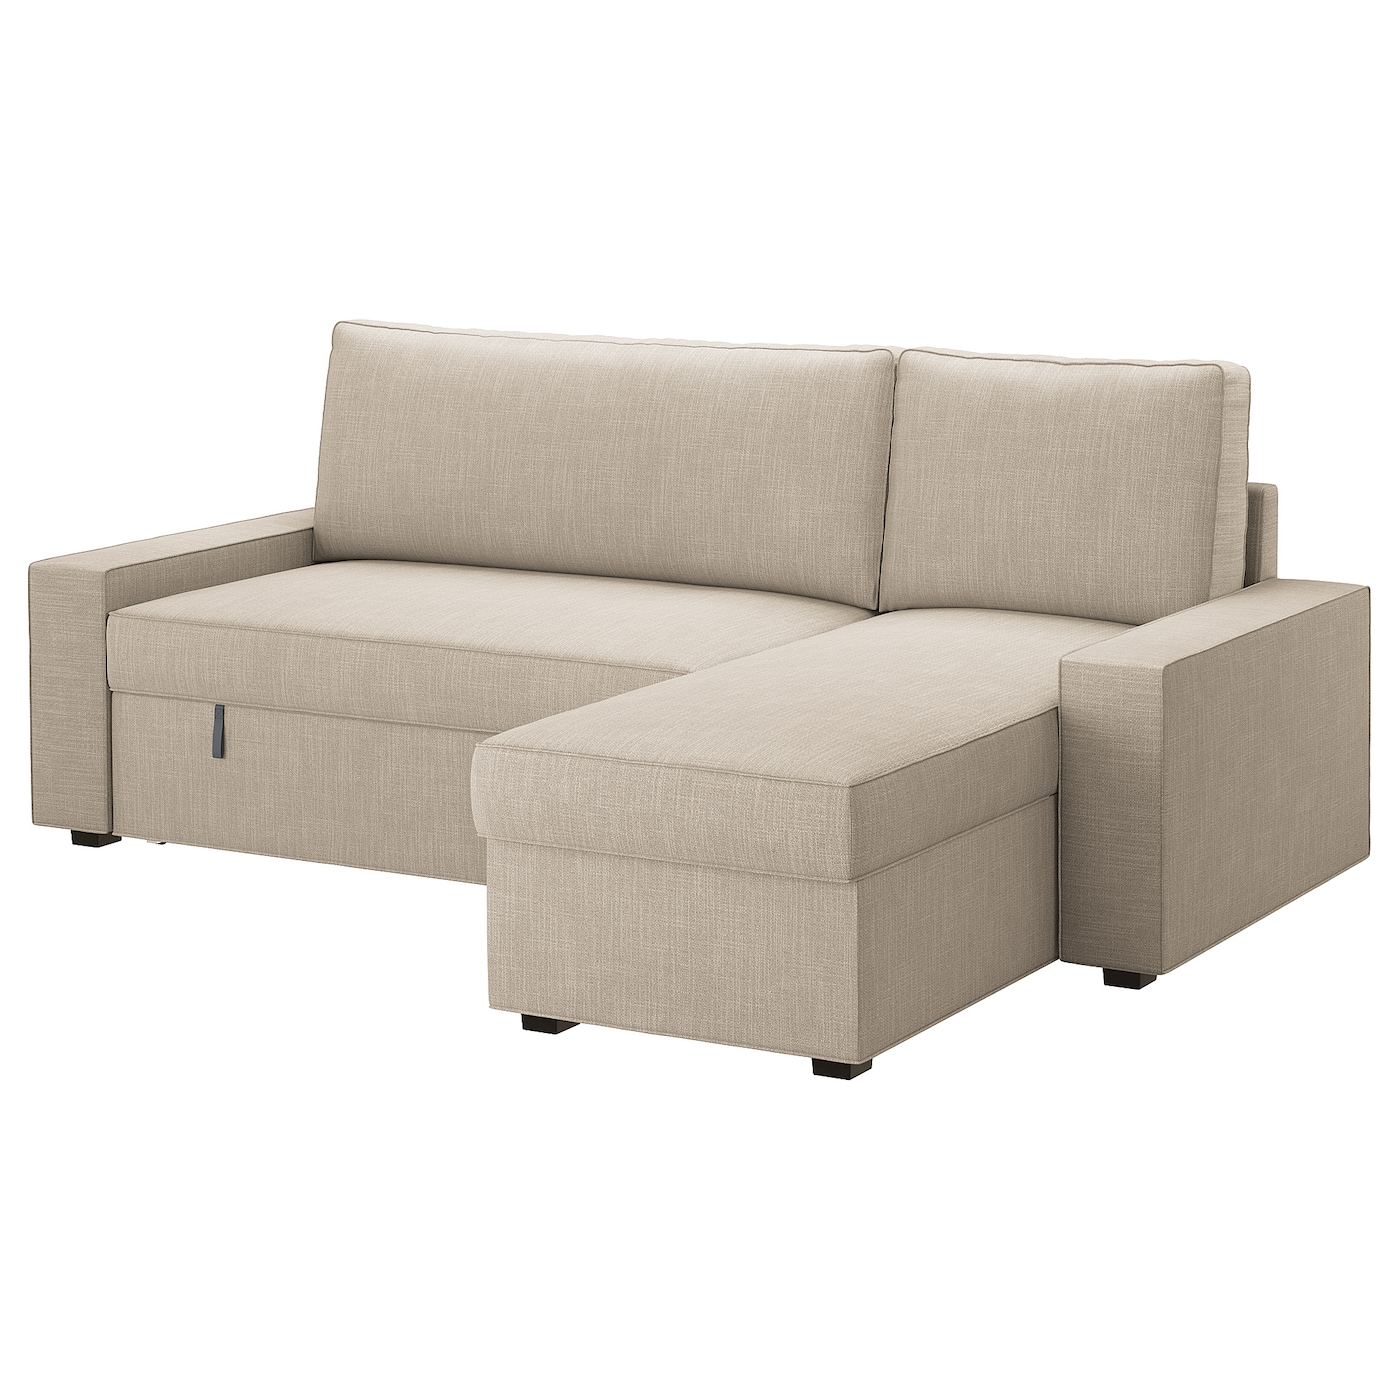 Vilasund sofa bed with chaise longue hillared beige ikea for Chaise longue double sofa bed